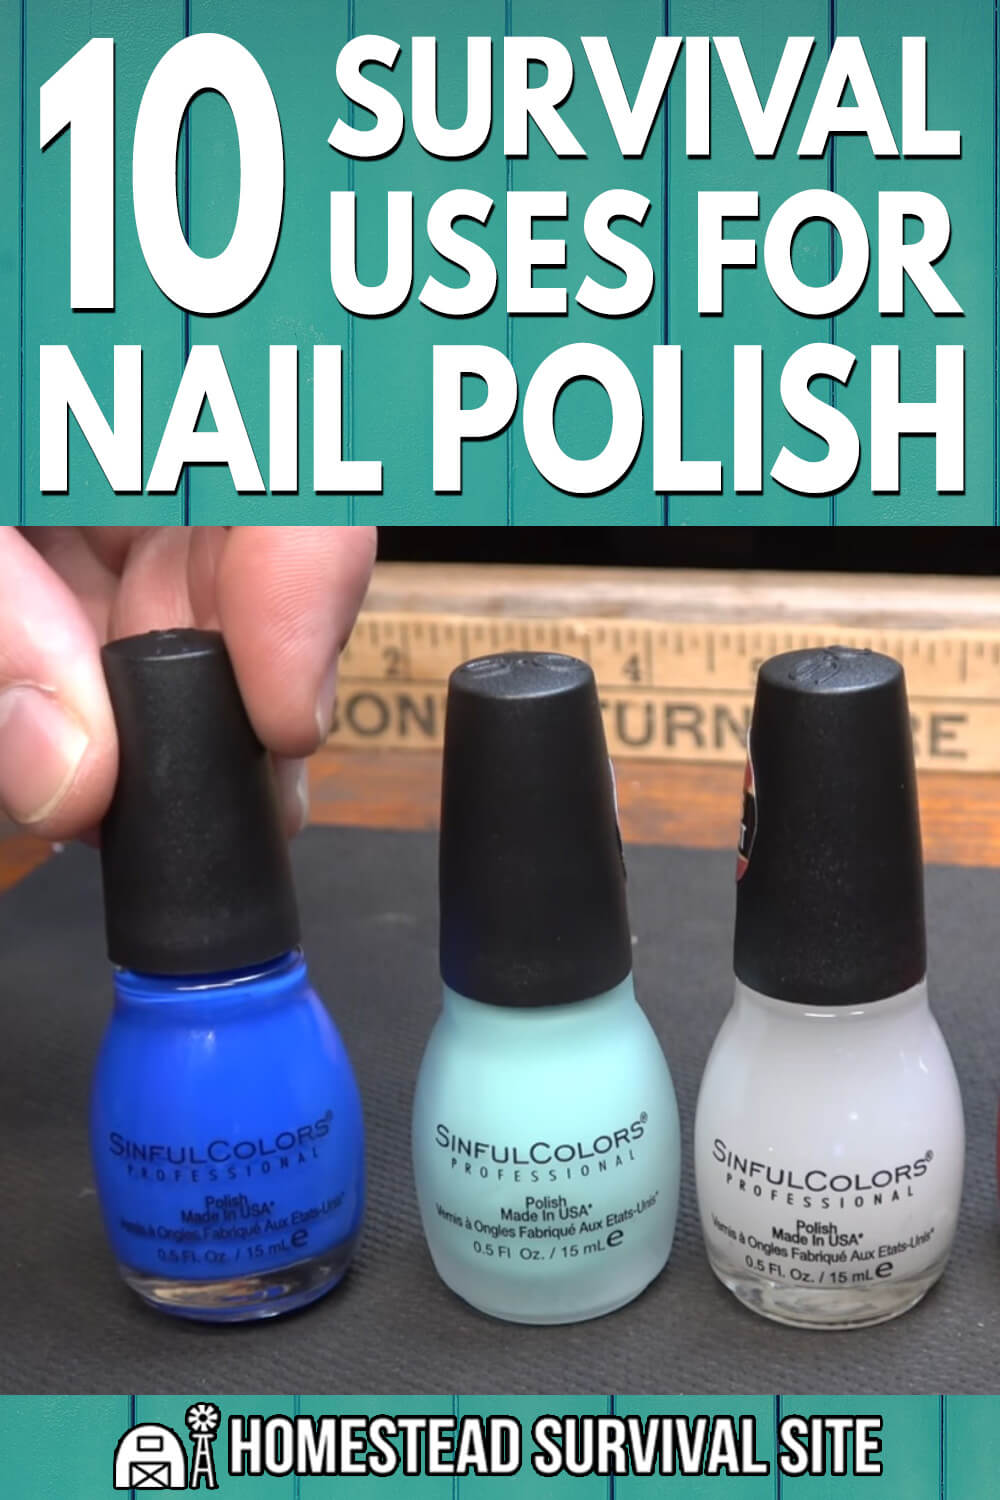 10 Survival Uses for Nail Polish